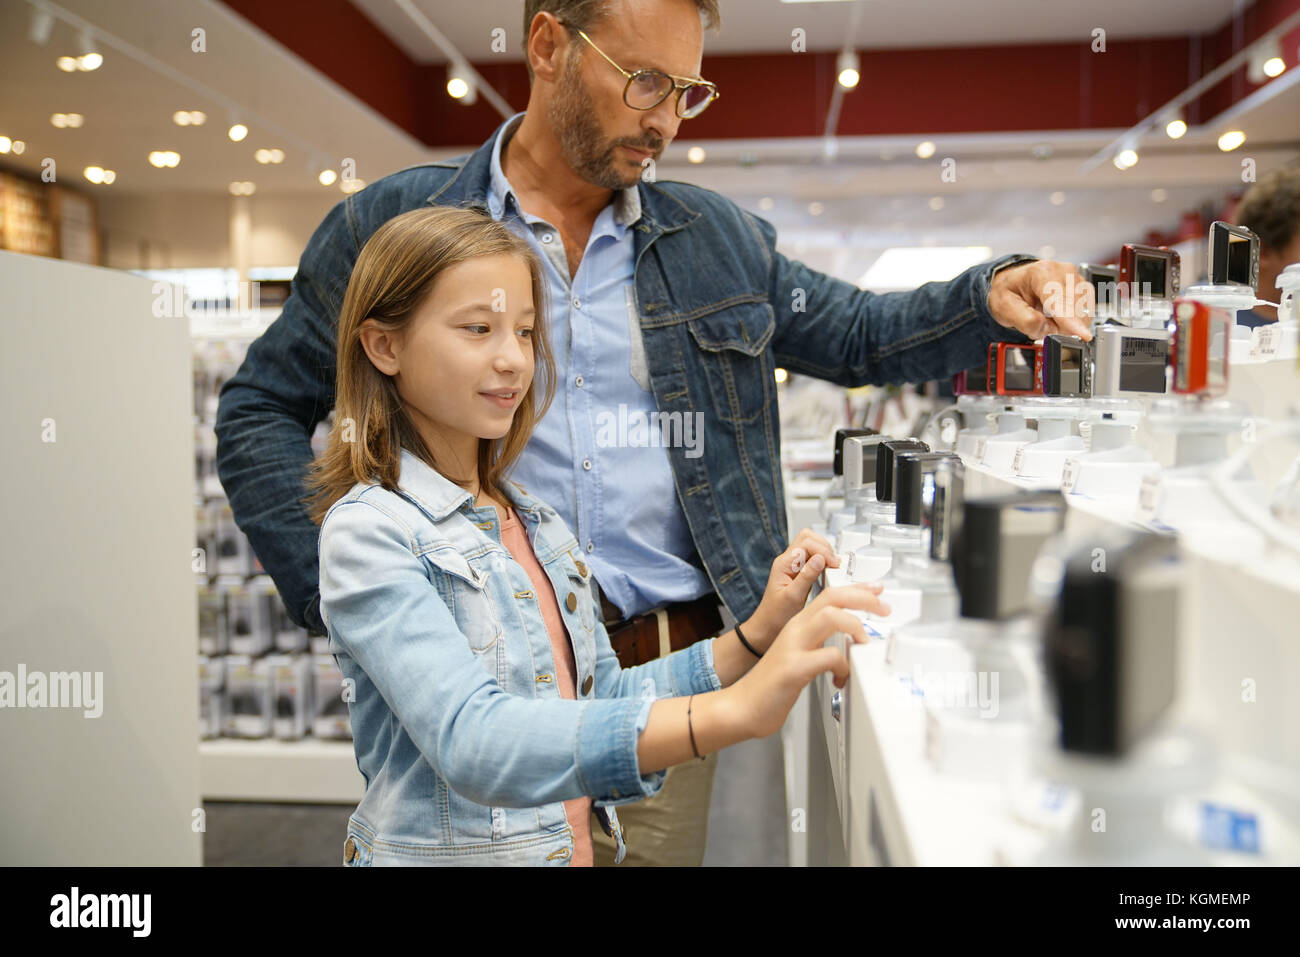 Man with kid looking at compact cameras in multimedia store - Stock Image